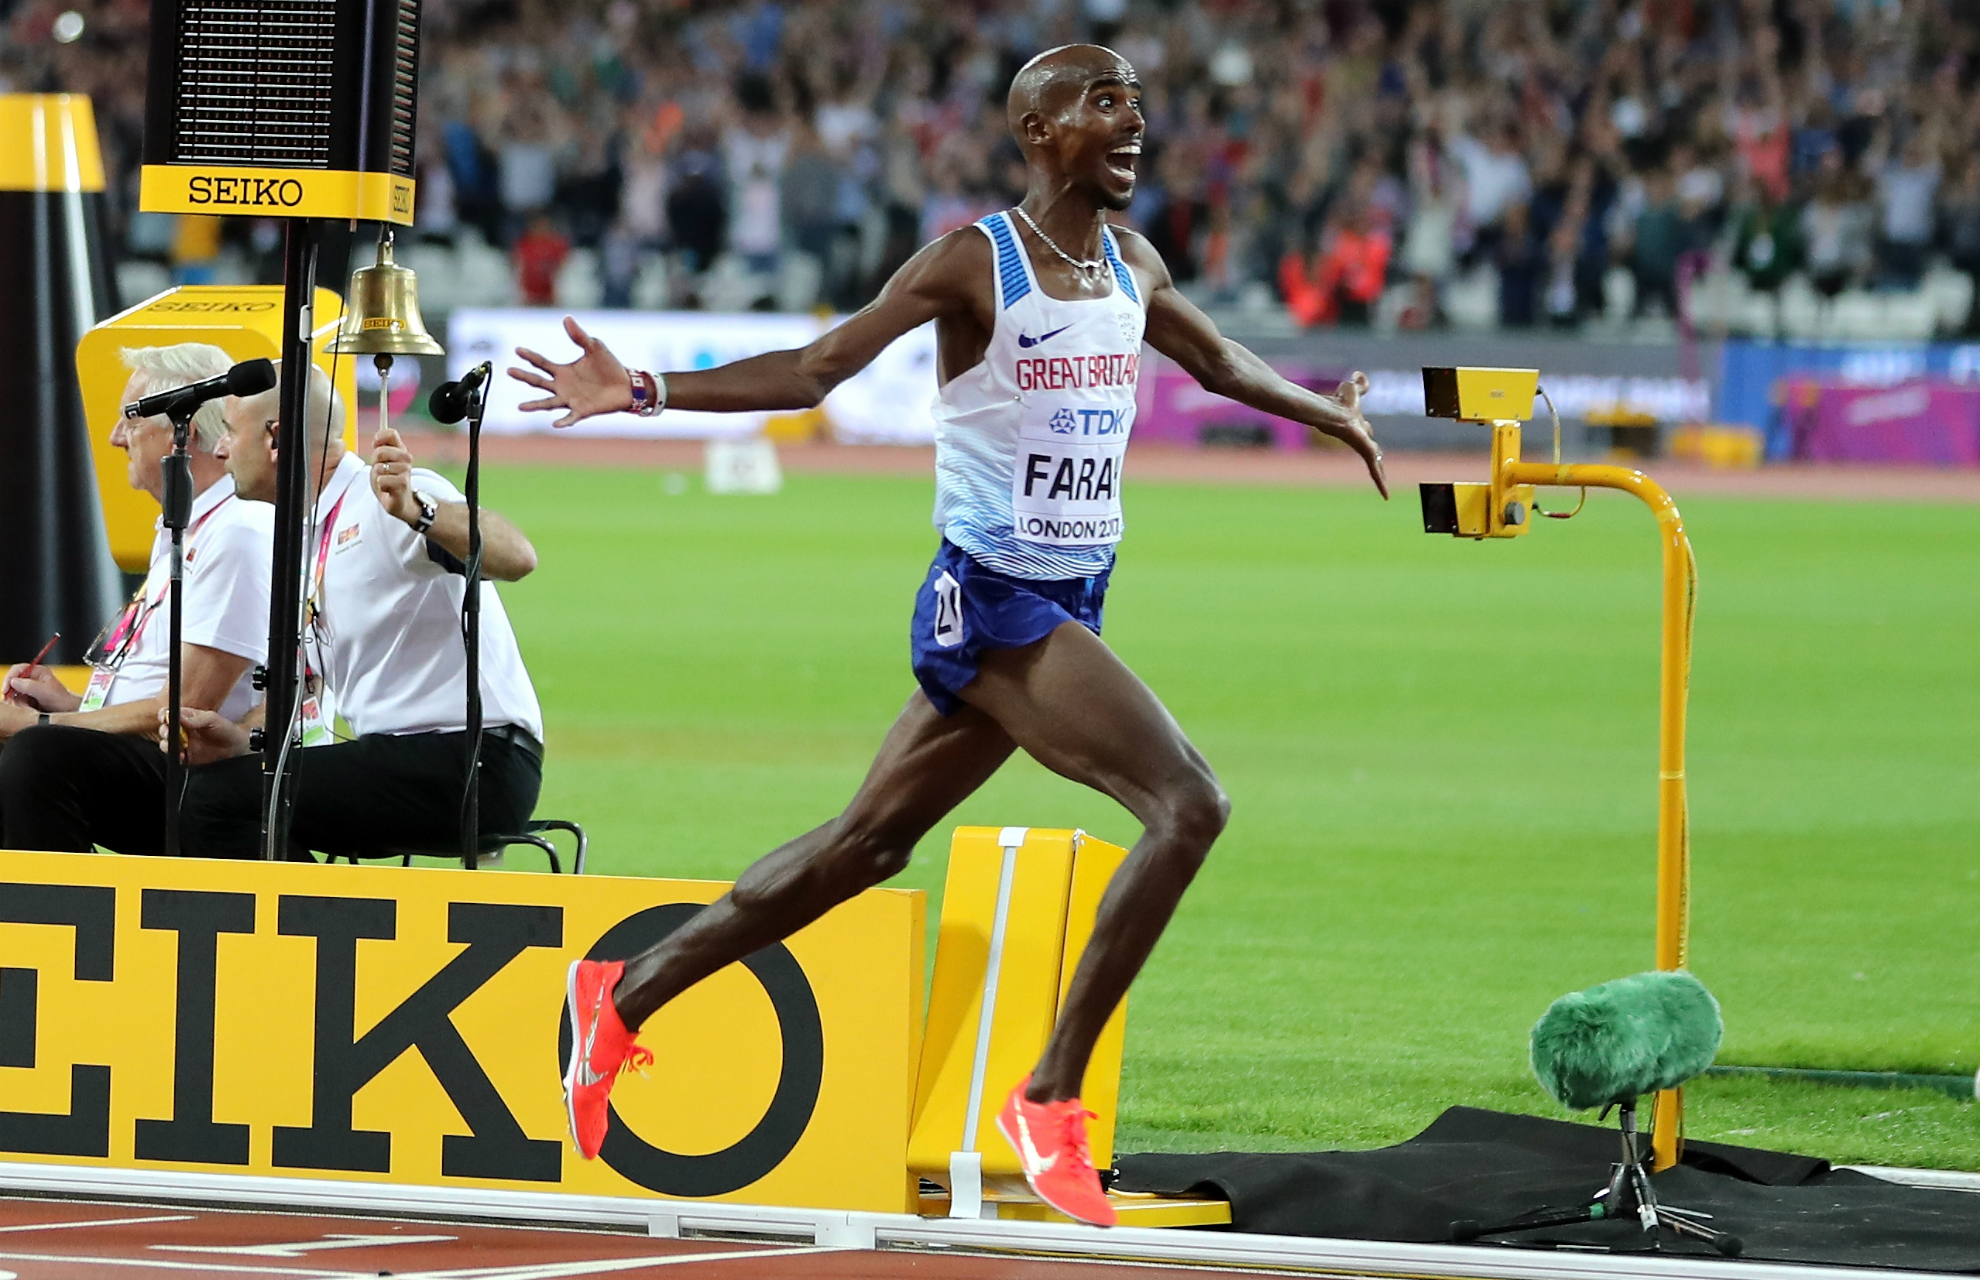 Mo Farah gives WADA go-ahead to retest doping test samples